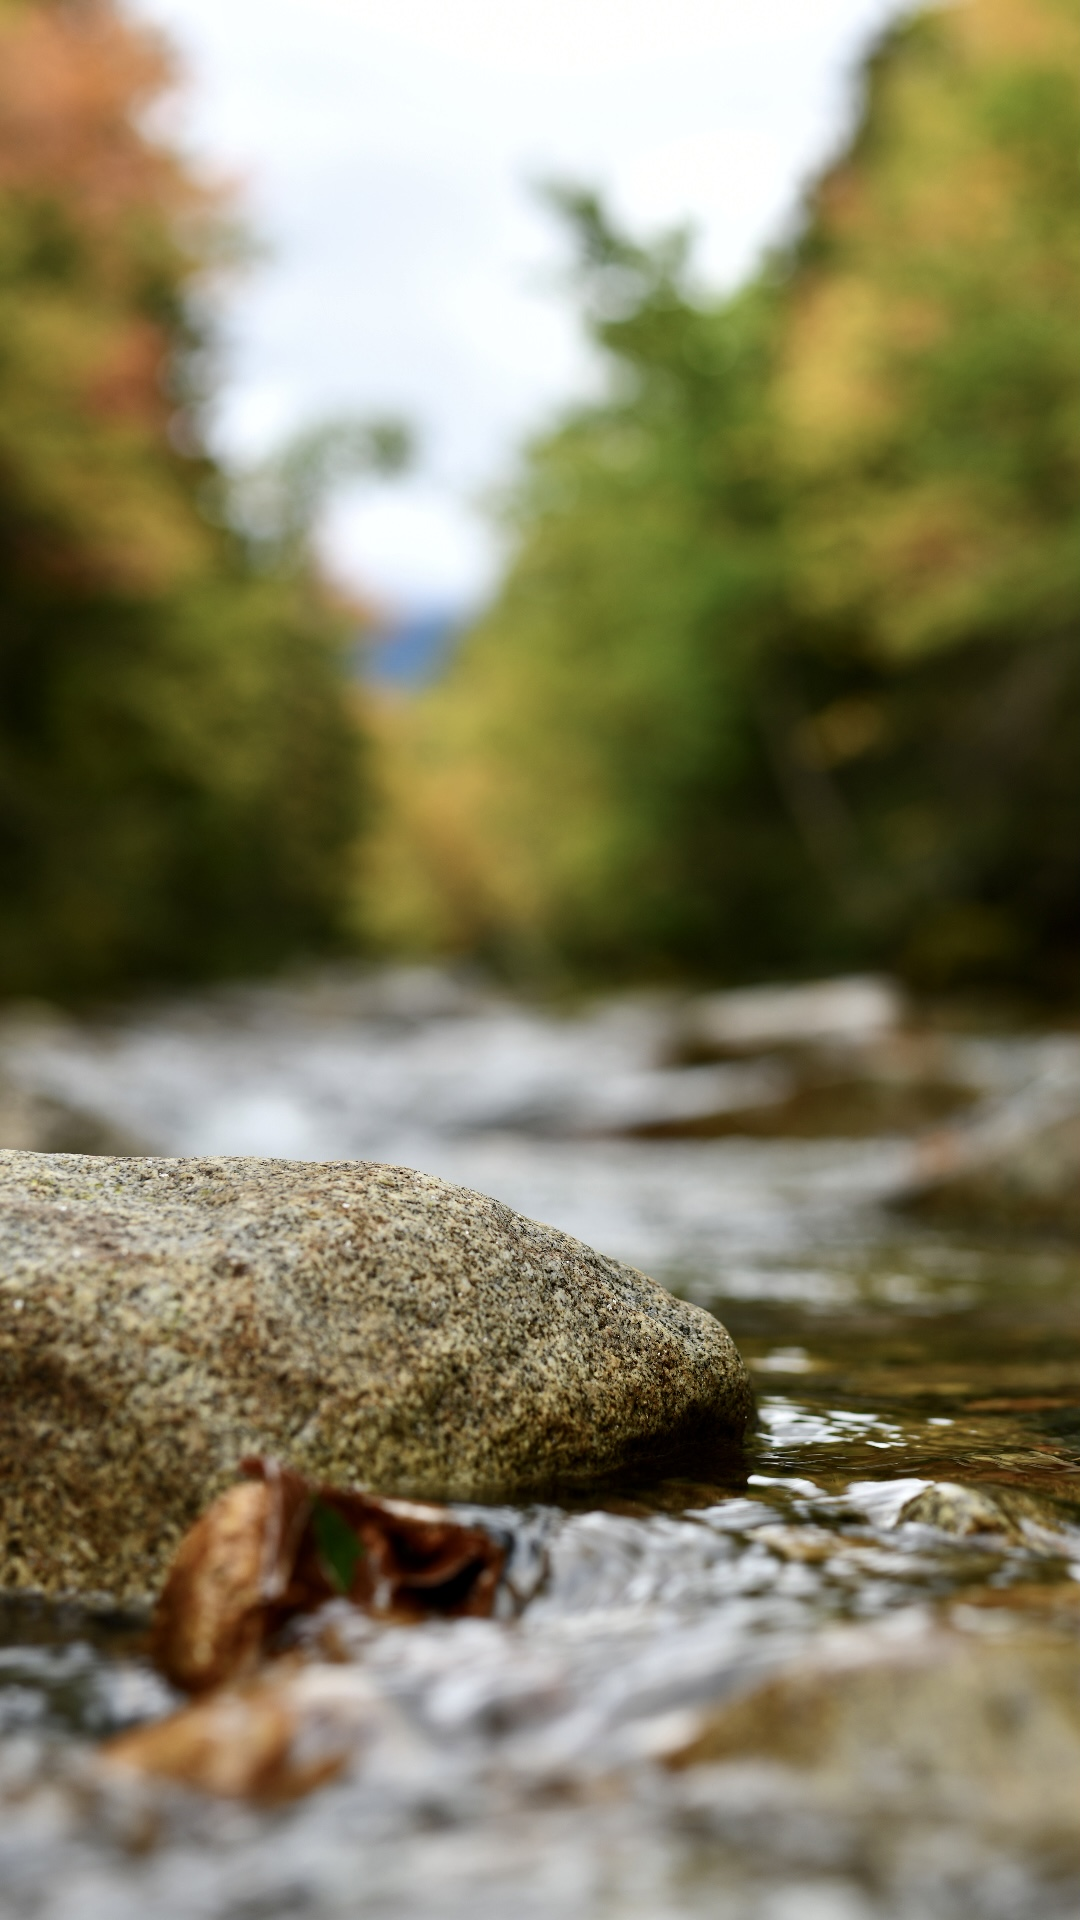 One river rock in focus. 2021. Taryn Okesson. Digital Photography. White Mountain National Forest, New Hampshire.